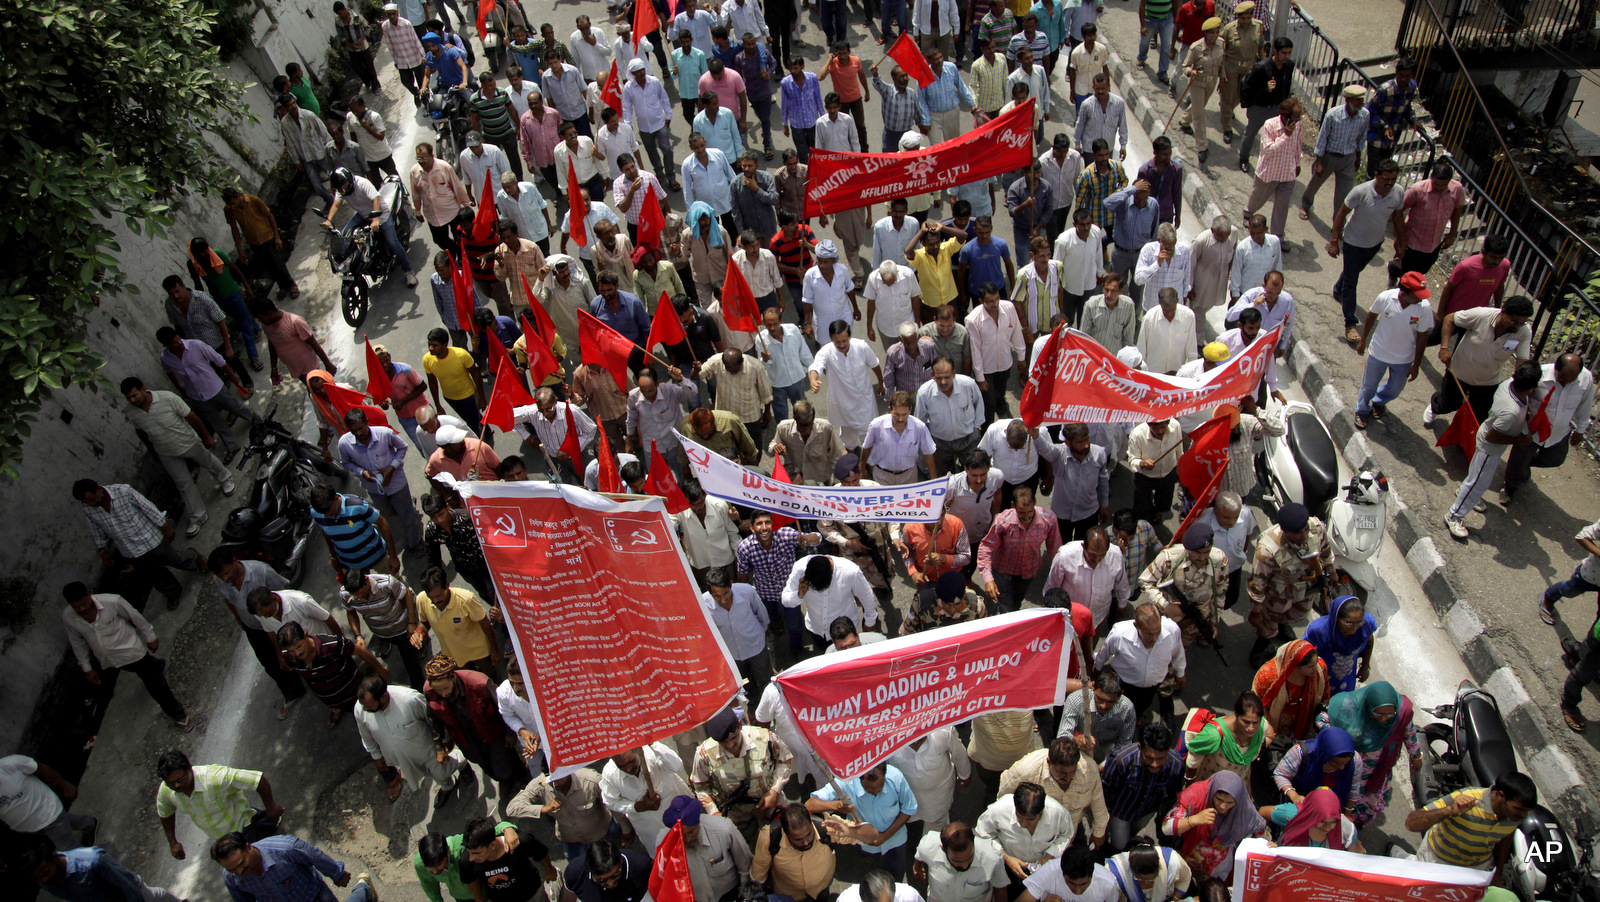 Indian workers participate in a rally during a nationwide strike called by trade unions, in Jammu, India, Sept. 2, 2016.The strike has been called against the government's alleged anti labor policies. Activists also demanded higher minimum wages and provision of social security for workers from unorganized sectors.